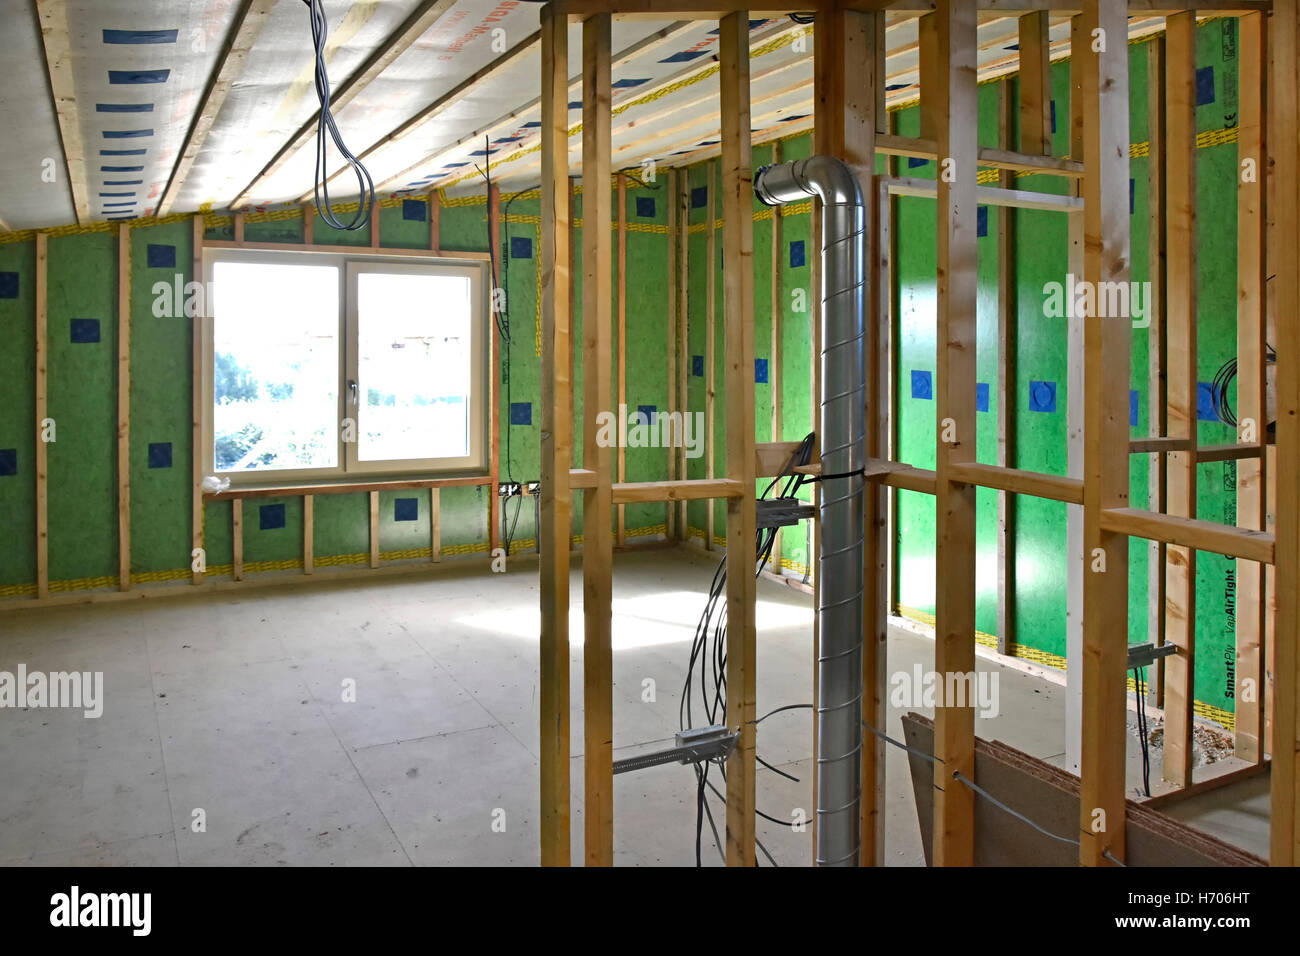 Thermal Insulation House Energy Efficiency Concept Isolated On White - Insulated external walls of timber framed uk passive house blue patches sealing holes used to pump